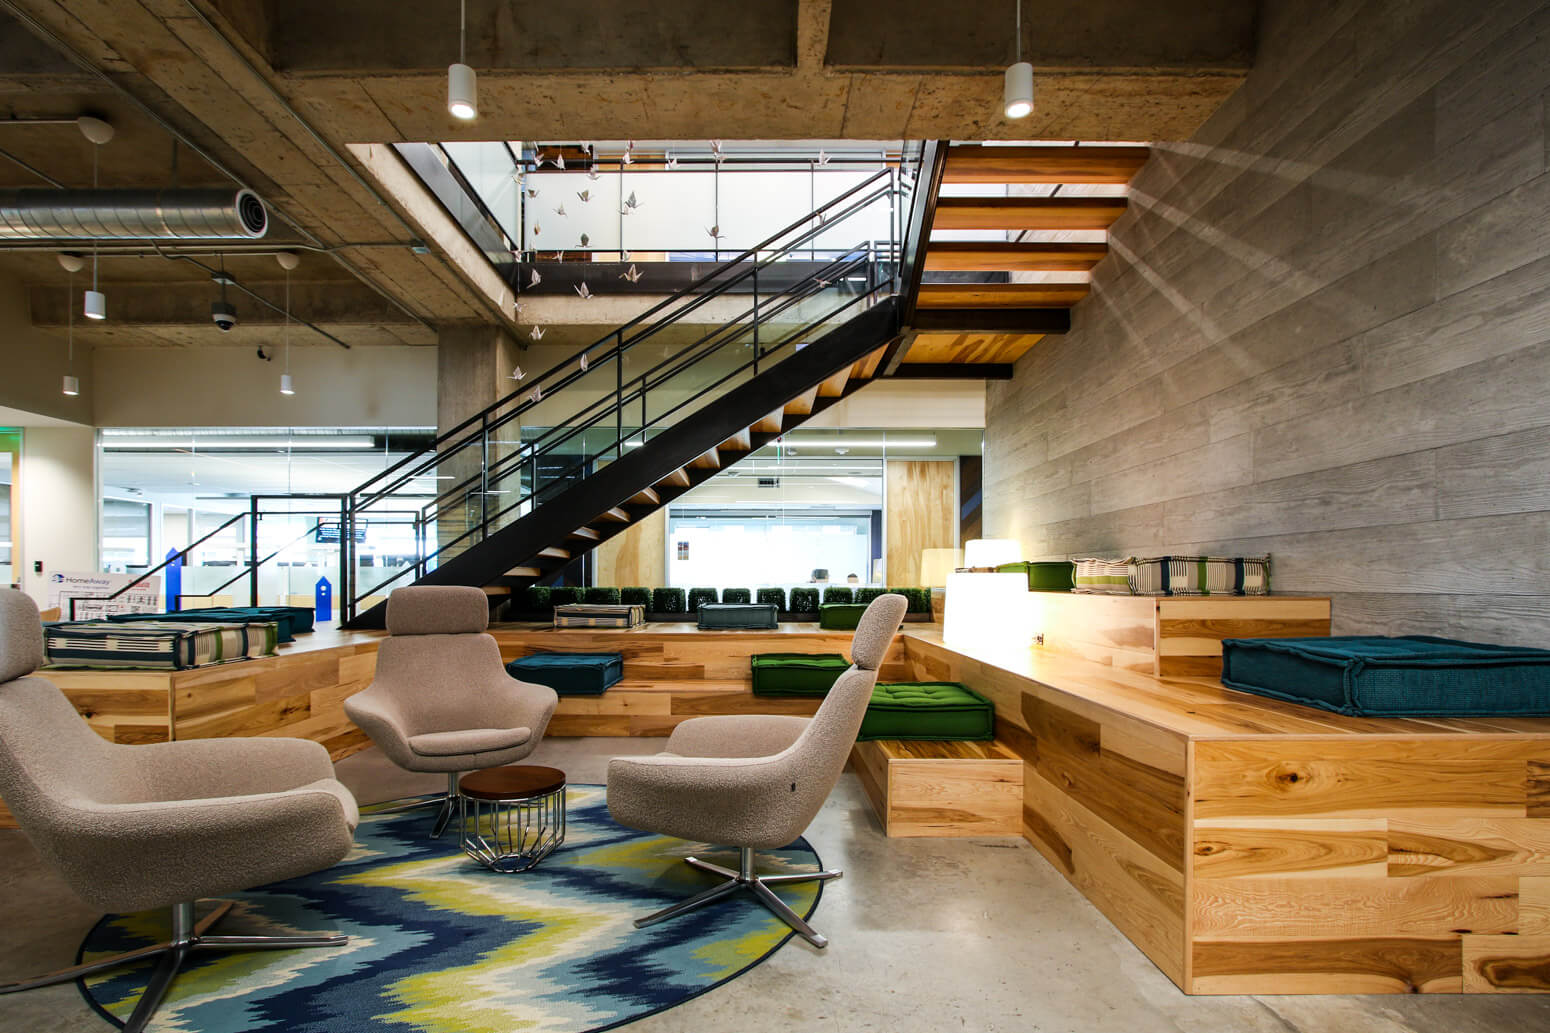 HomeAway Austin Office Killer Spaces-9